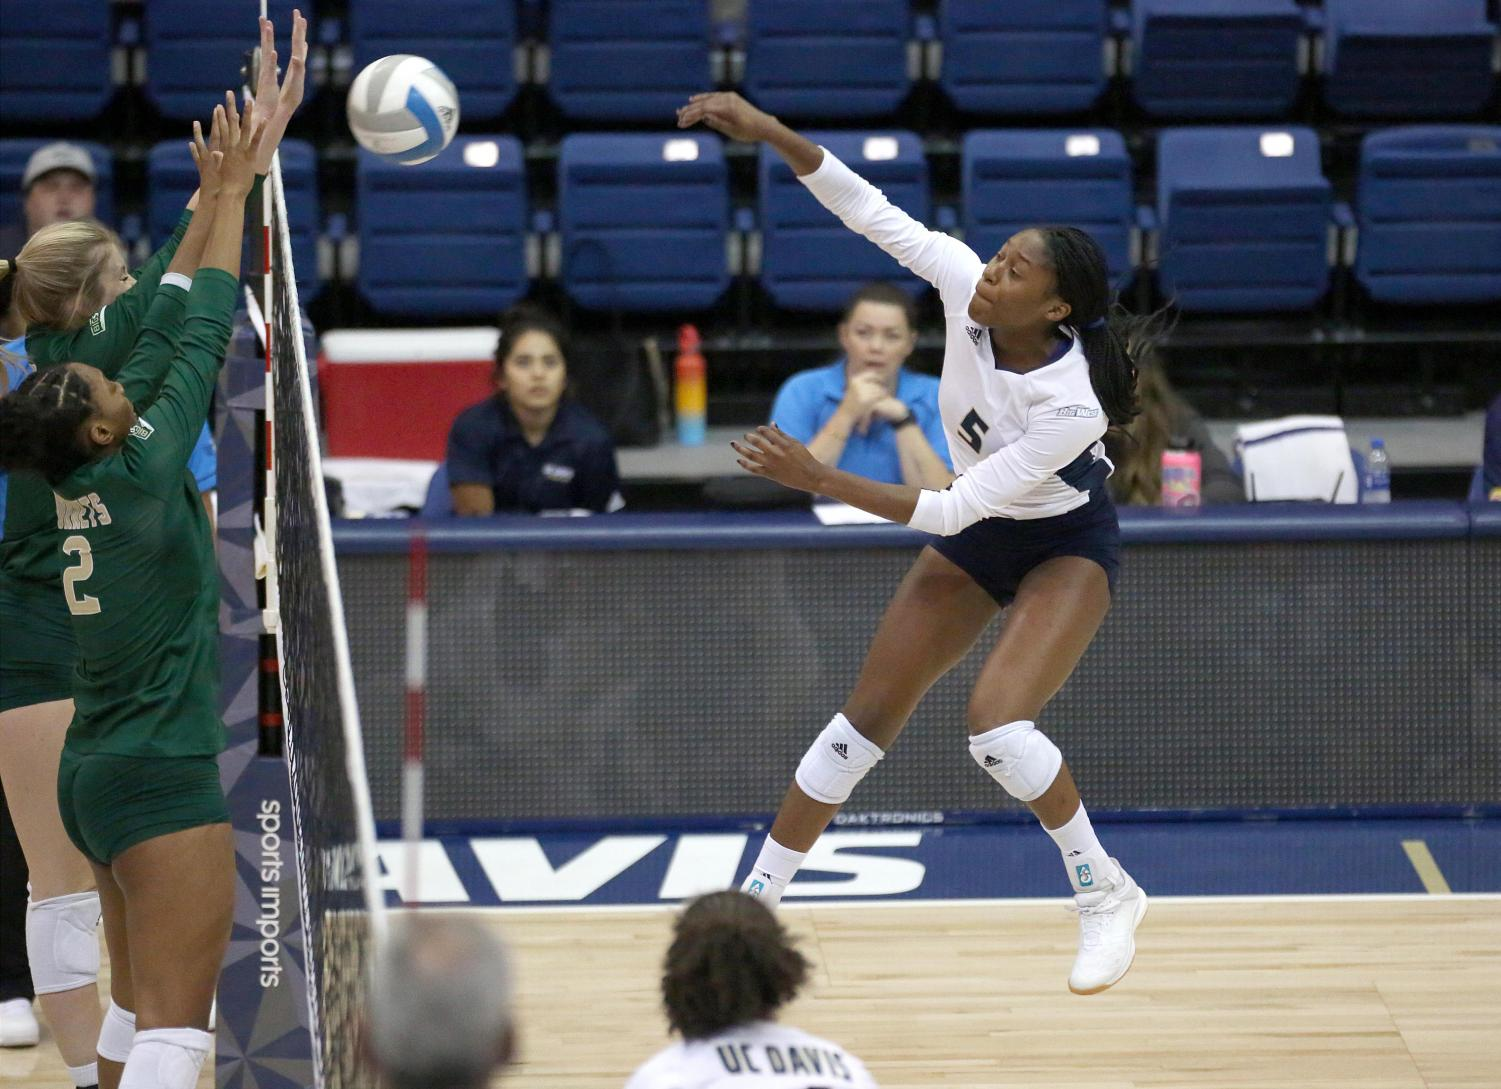 Sac State junior middle blocker Cianna Andrews attempts to block UC Davis sophomore outside hitter Mahalia White on Tuesday, Sept. 3 at the Pavillion. The Hornets began their 12-game road trip with a 3-1 loss to the Aggies.